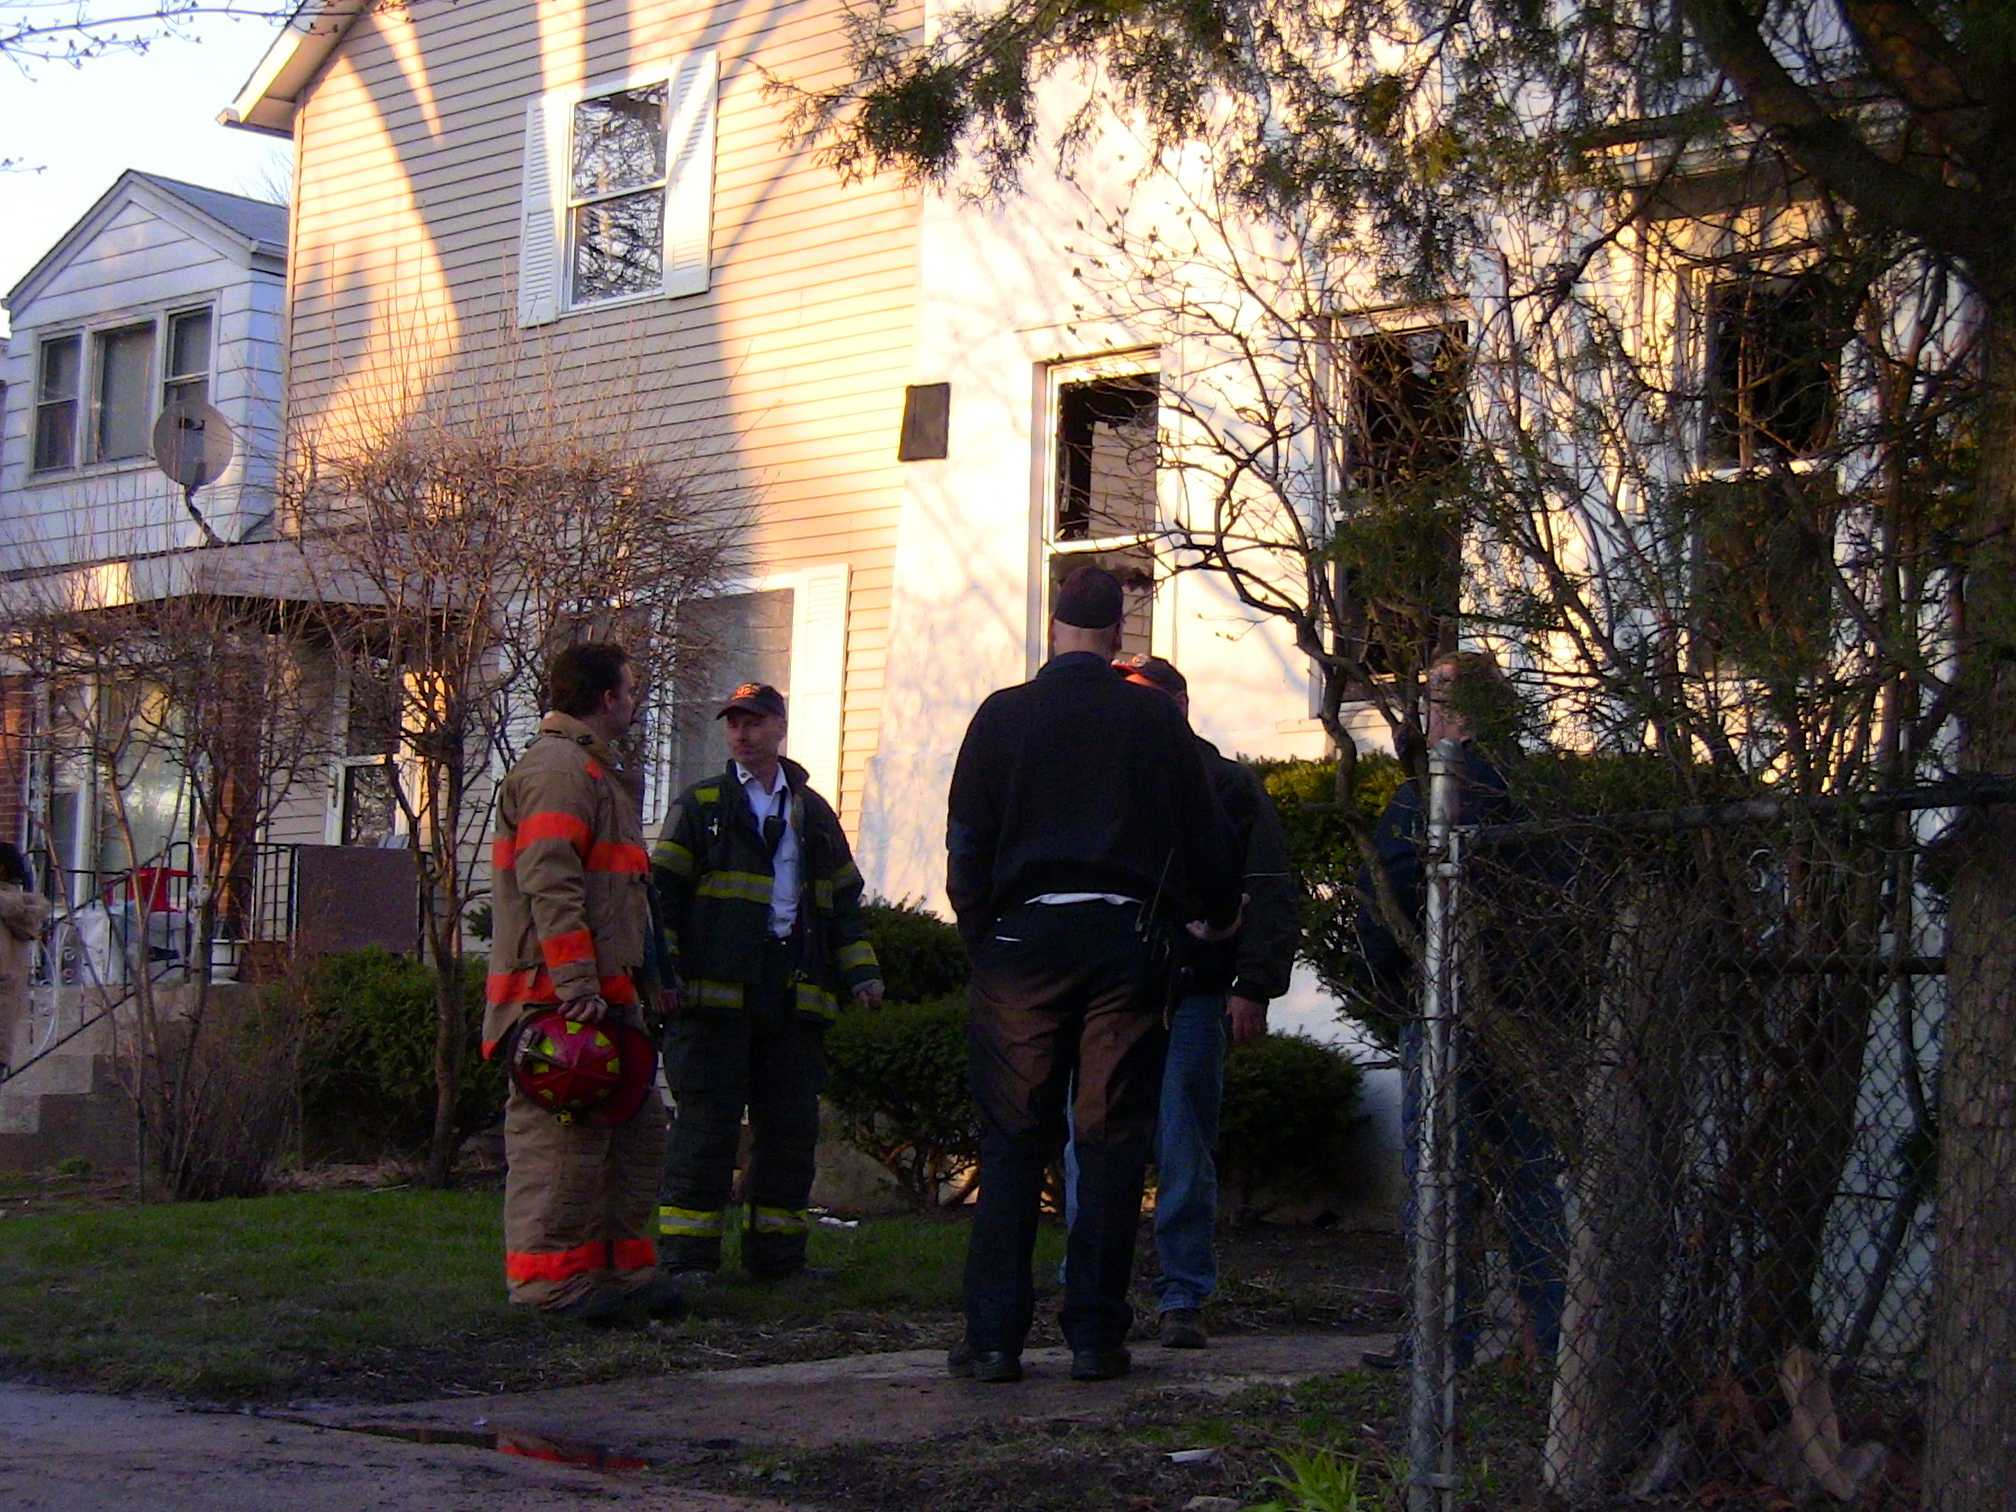 Evanston firefighters and officials examine the damage of a fire Wednesday evening. The blaze broke out in the 1900 block of Hartrey Avenue.